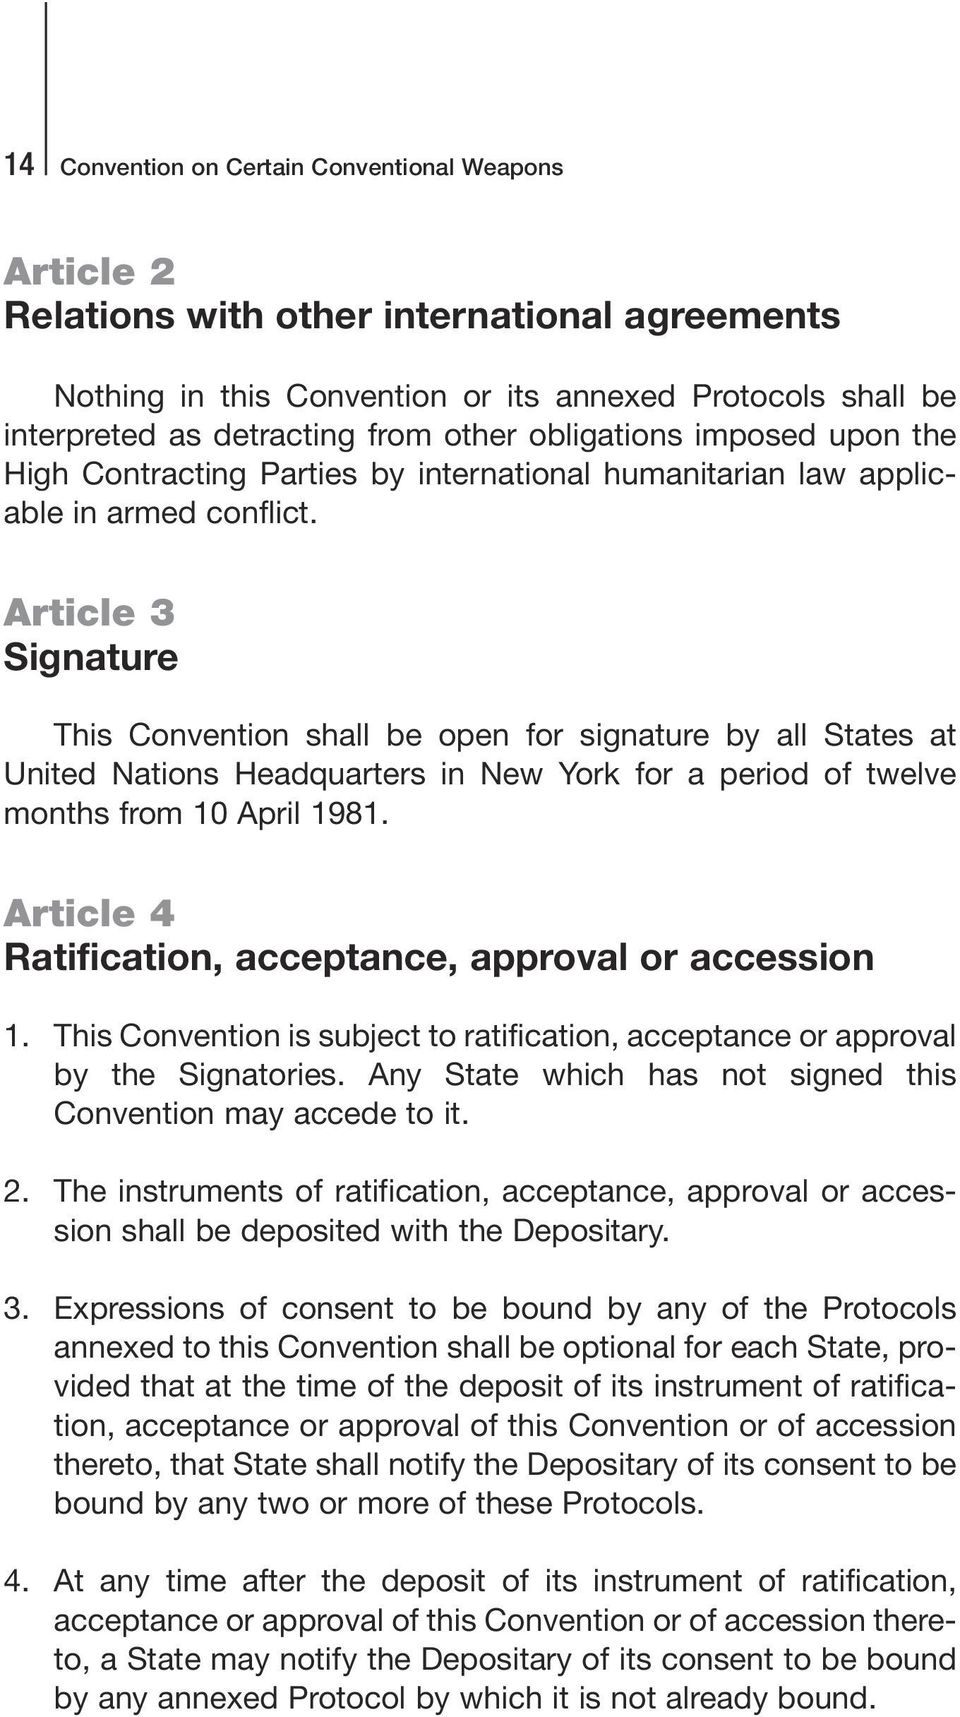 Article 3 Signature This Convention shall be open for signature by all States at United Nations Headquarters in New York for a period of twelve months from 10 April 1981.